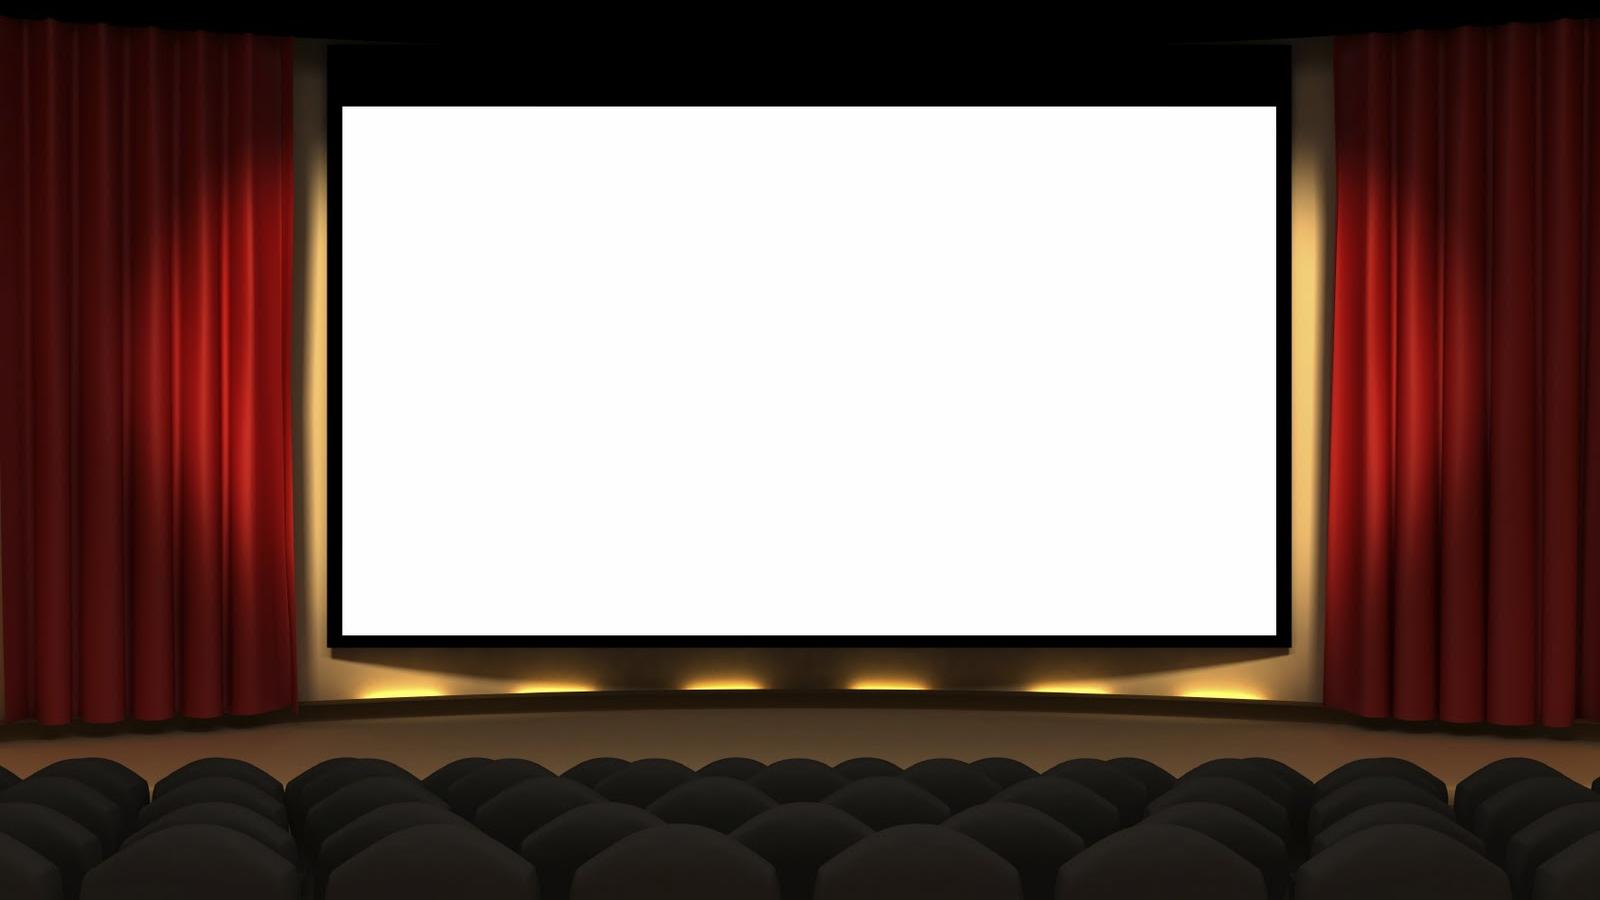 Free Download Displaying 18 Images For Movie Theater Backgrounds 1600x1051 For Your Desktop Mobile Tablet Explore 77 Theater Backgrounds Home Theater Wallpaper Theater Wallpaper Backgrounds Movie Theatre Wallpaper